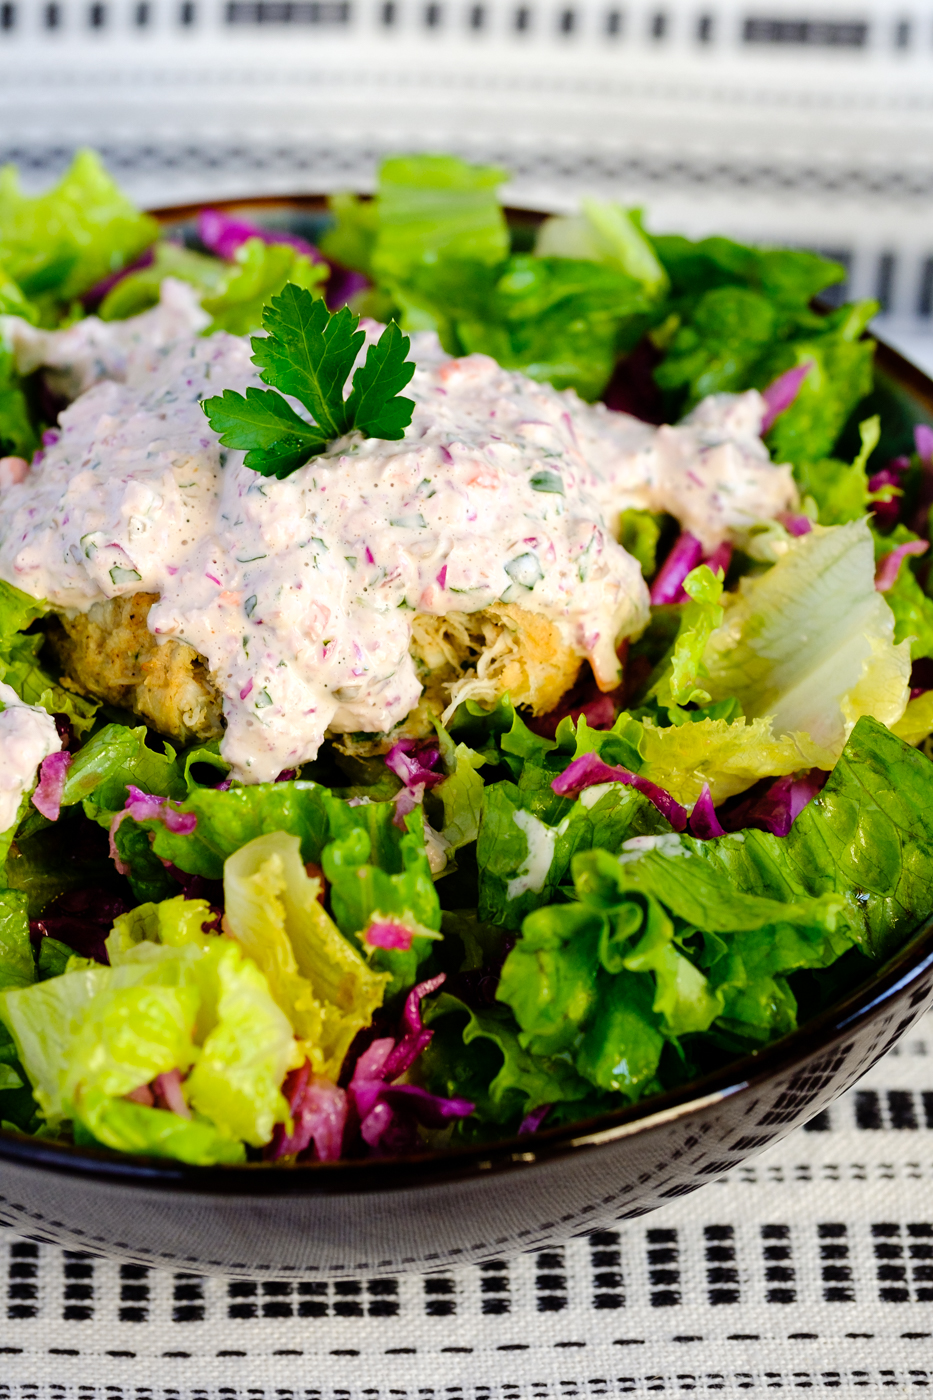 Lectin-free crab cakes in a bowl of salad with homemade remoulade